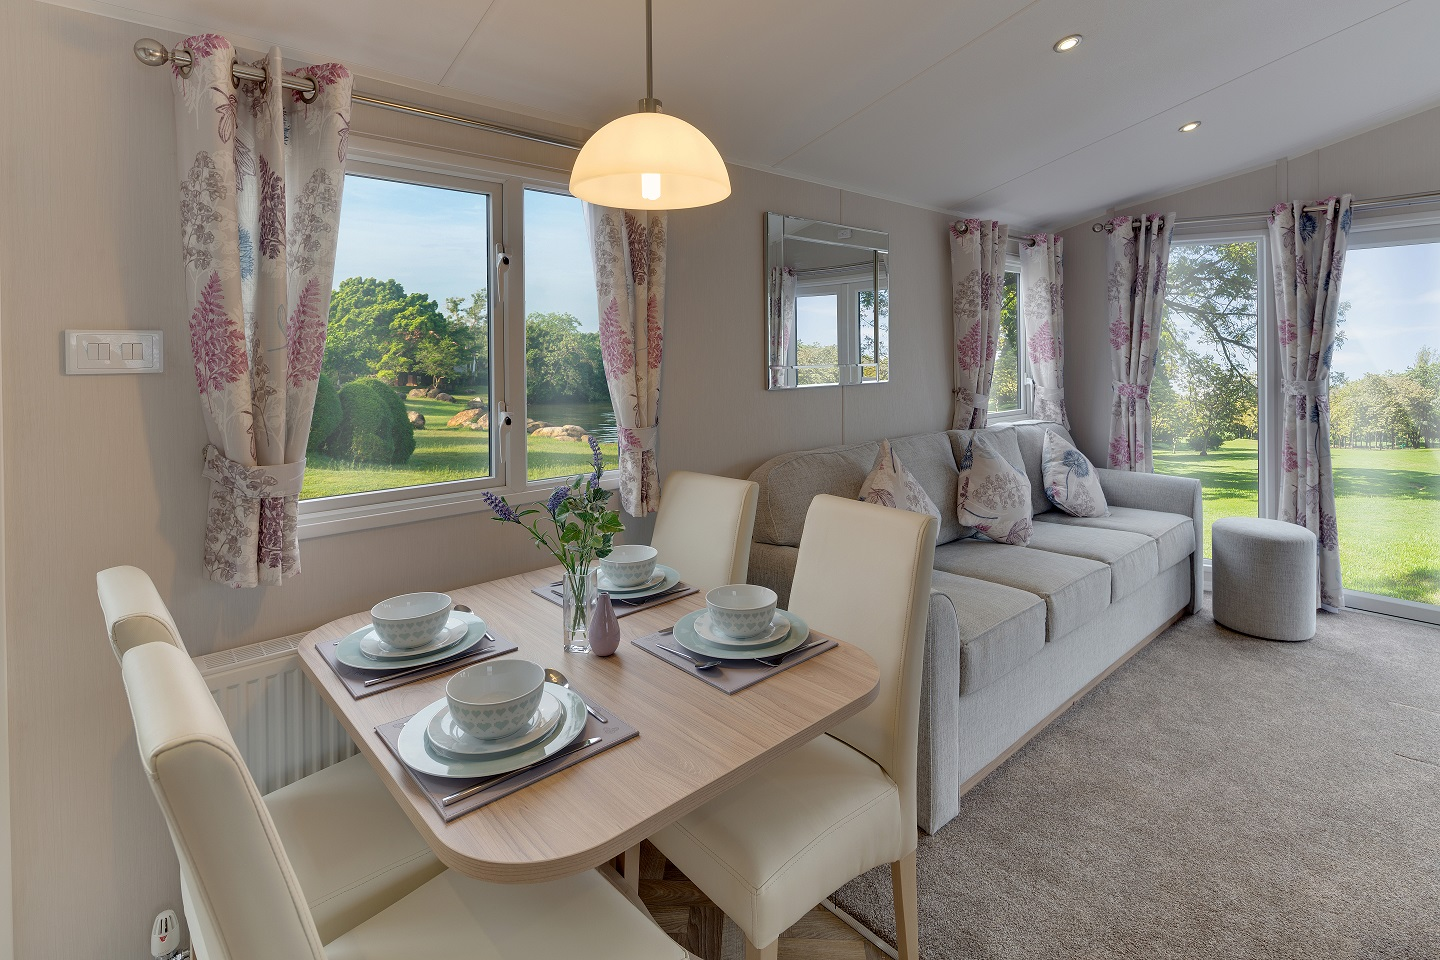 Willerby Brockenhurst: New Static Caravans and Holiday Homes for Sale, Clifton, Morpeth Image 1